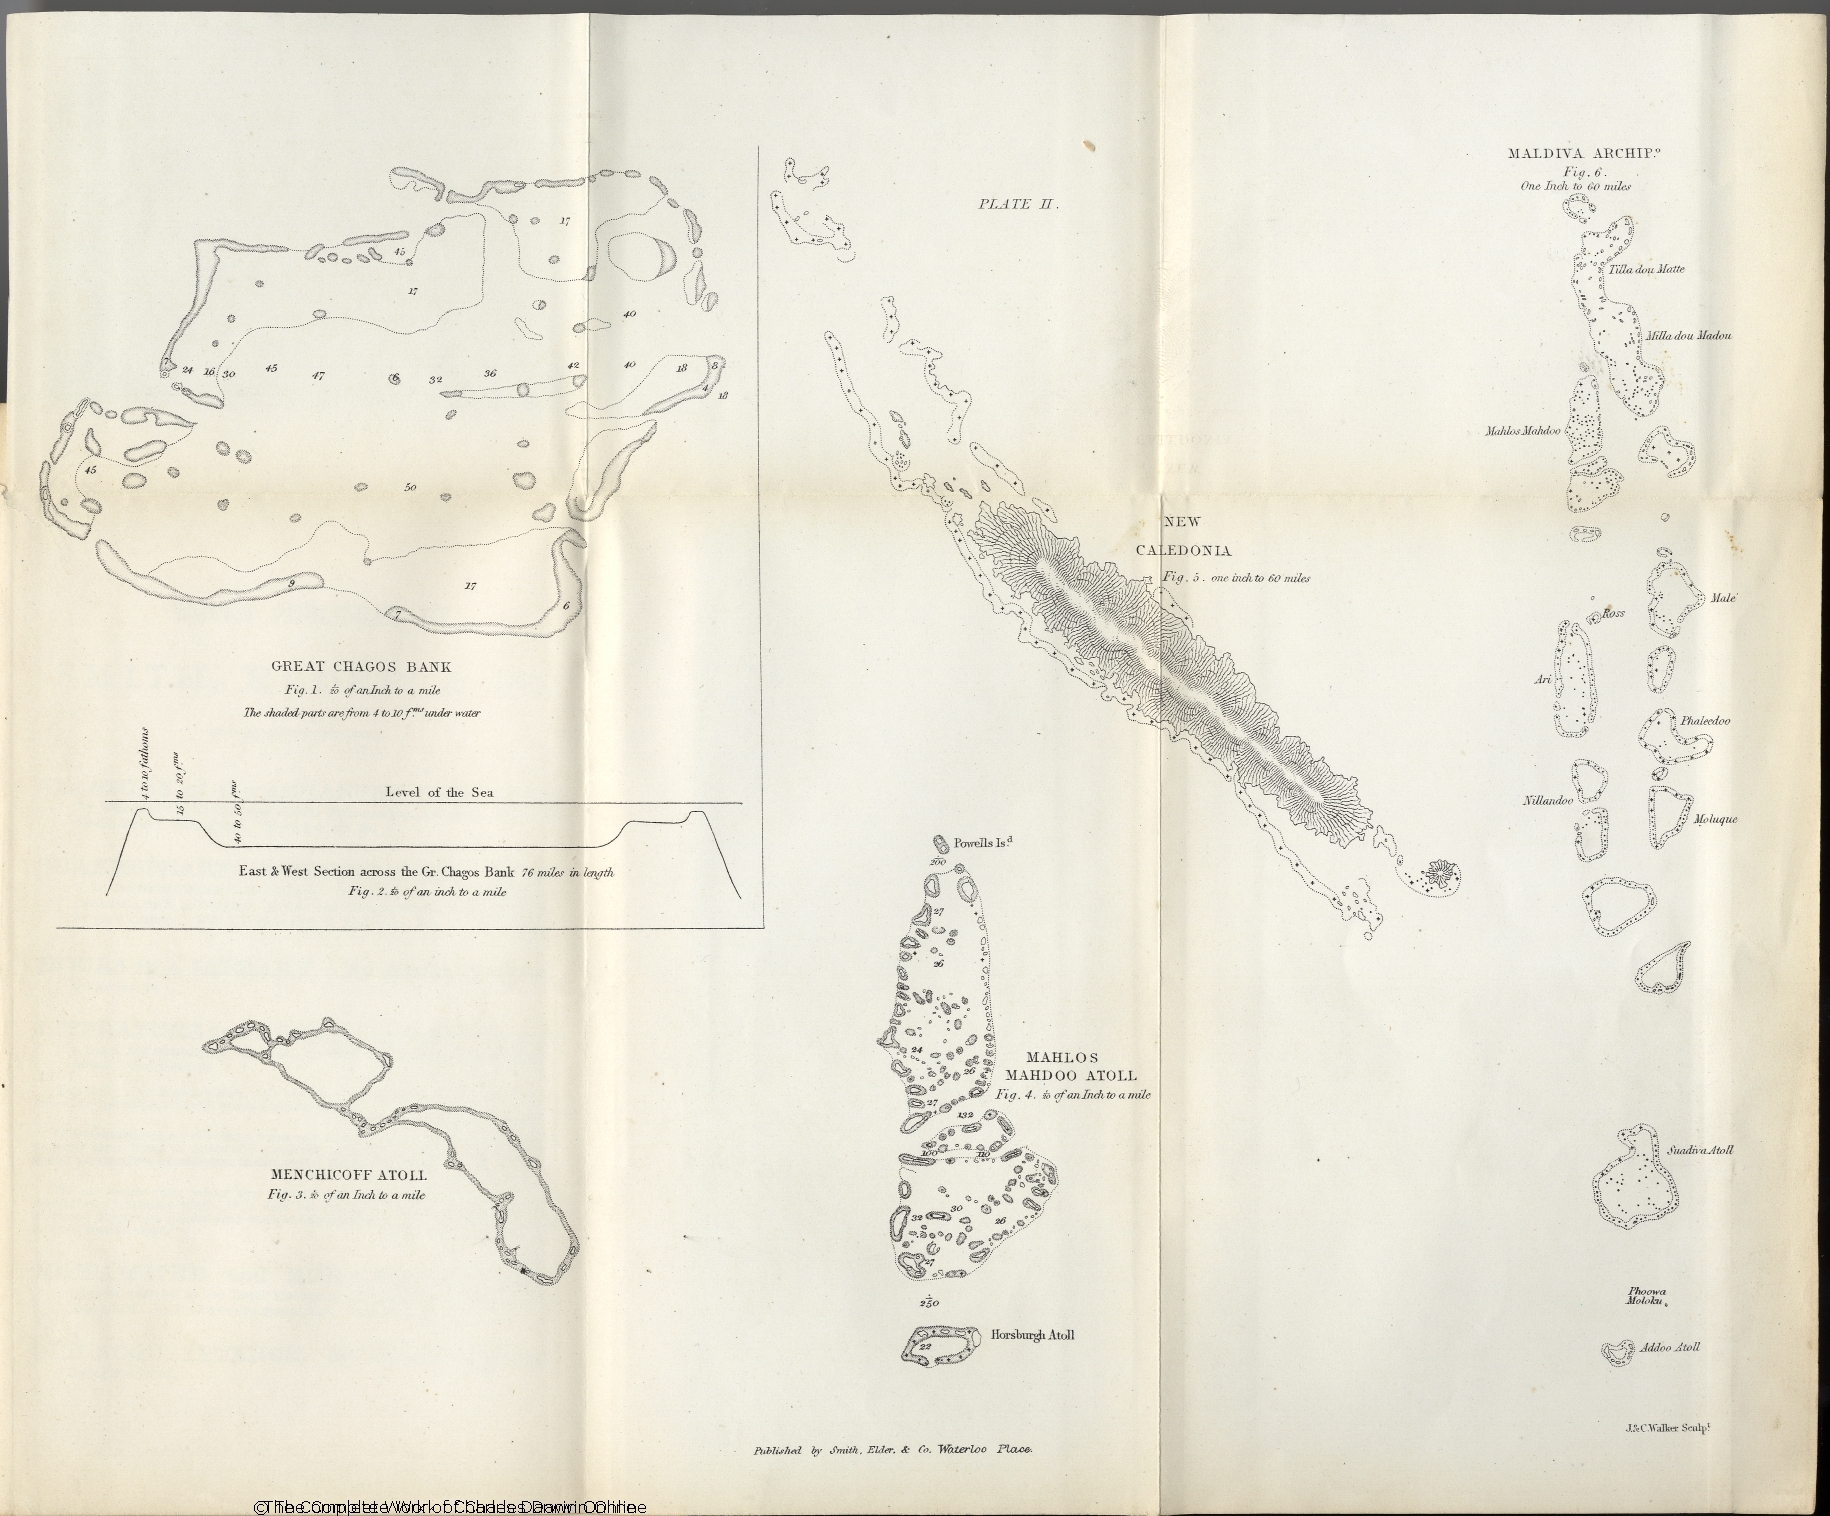 hight resolution of darwin c r 1874 the structure and distribution of coral reefs 2d edition london smith elder and co